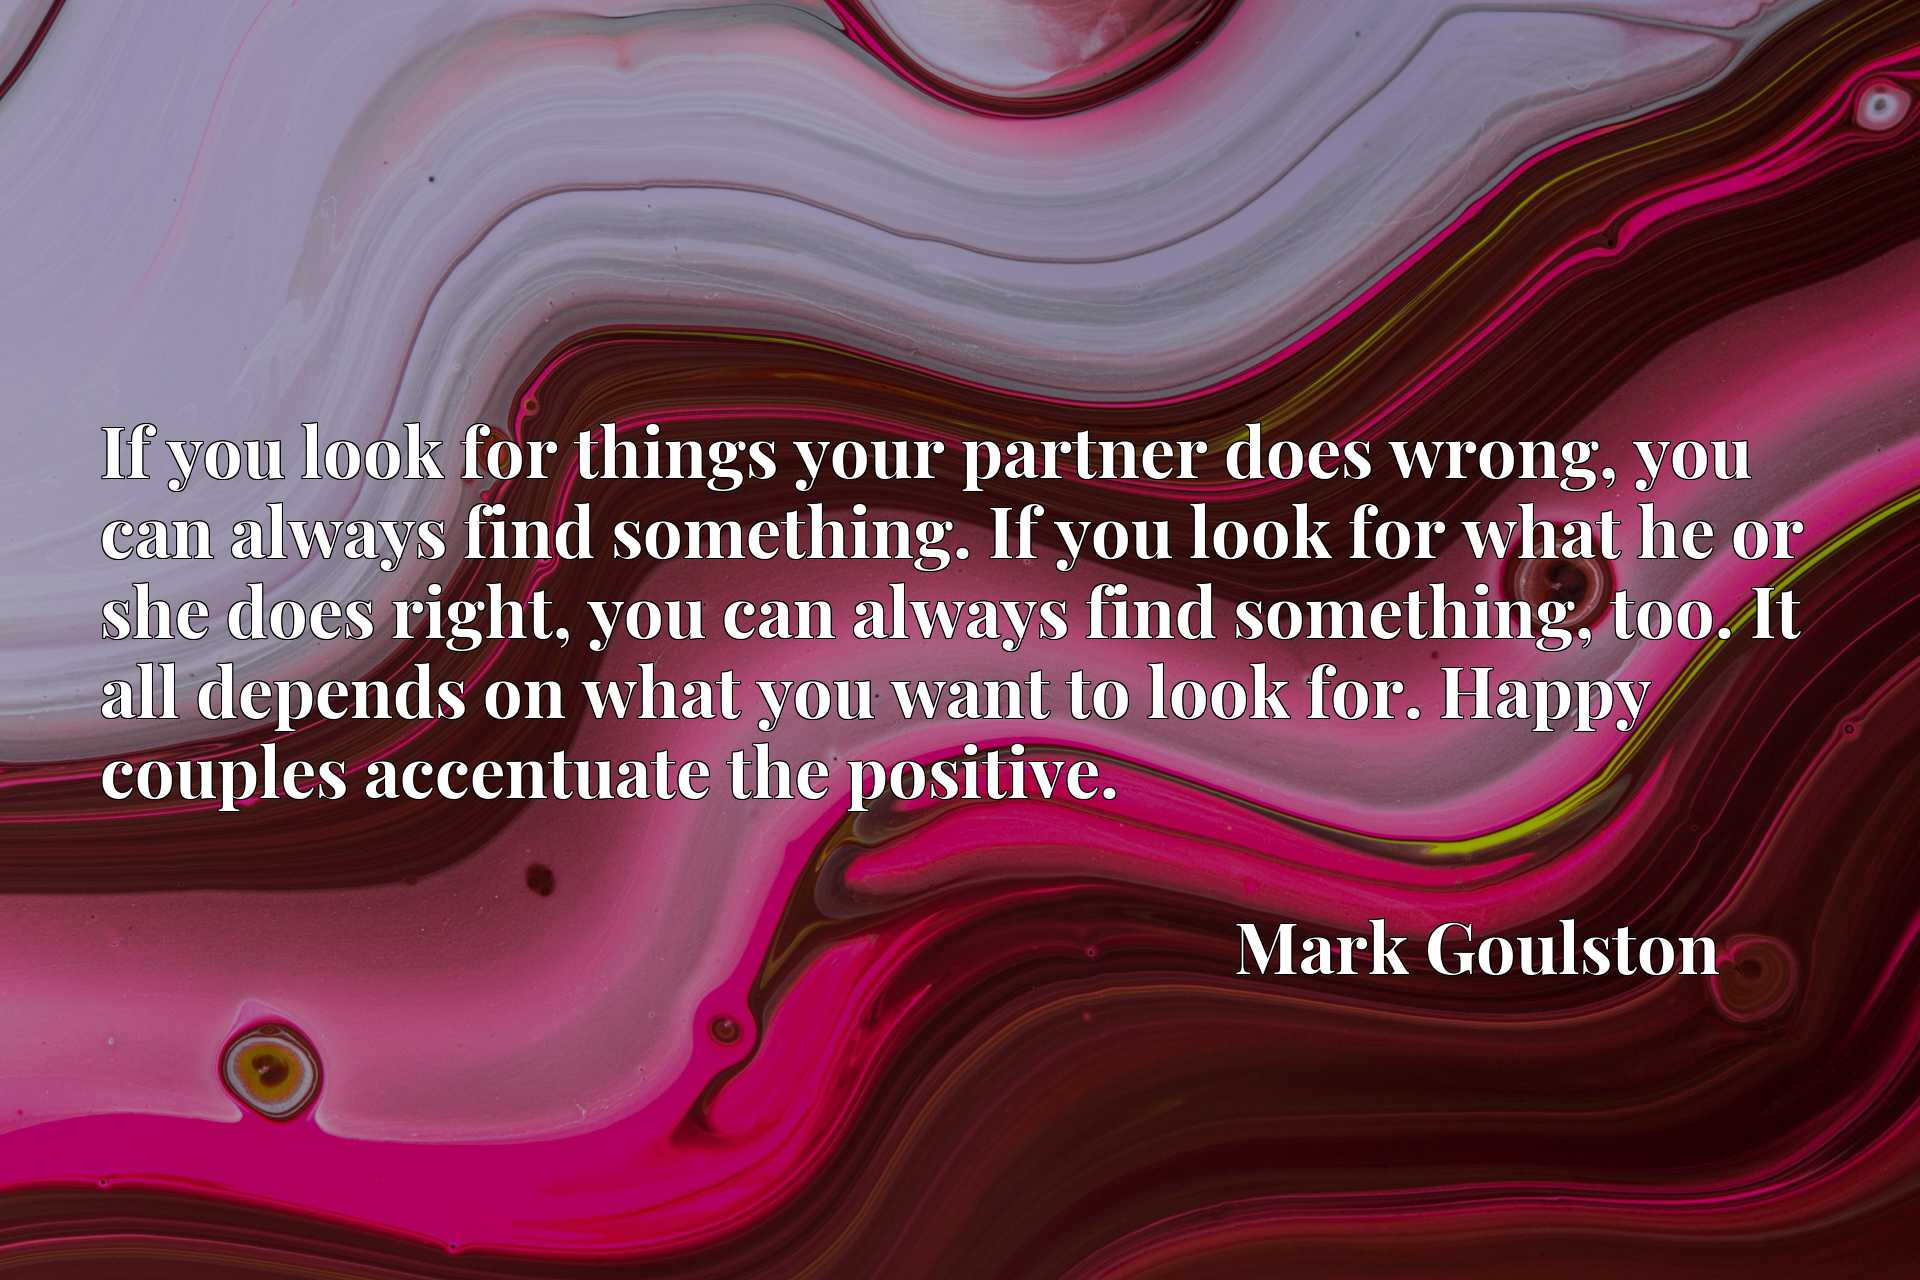 If you look for things your partner does wrong, you can always find something. If you look for what he or she does right, you can always find something, too. It all depends on what you want to look for. Happy couples accentuate the positive.